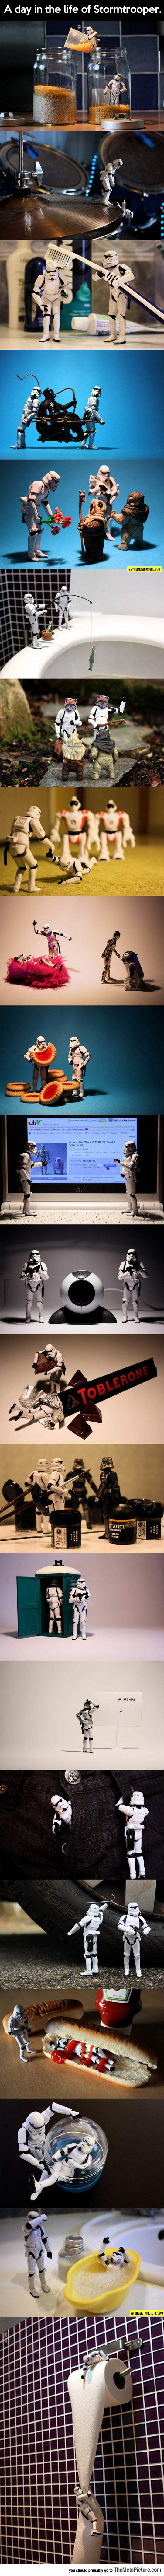 cool-Stormtrooper-day-life-Star-Wars